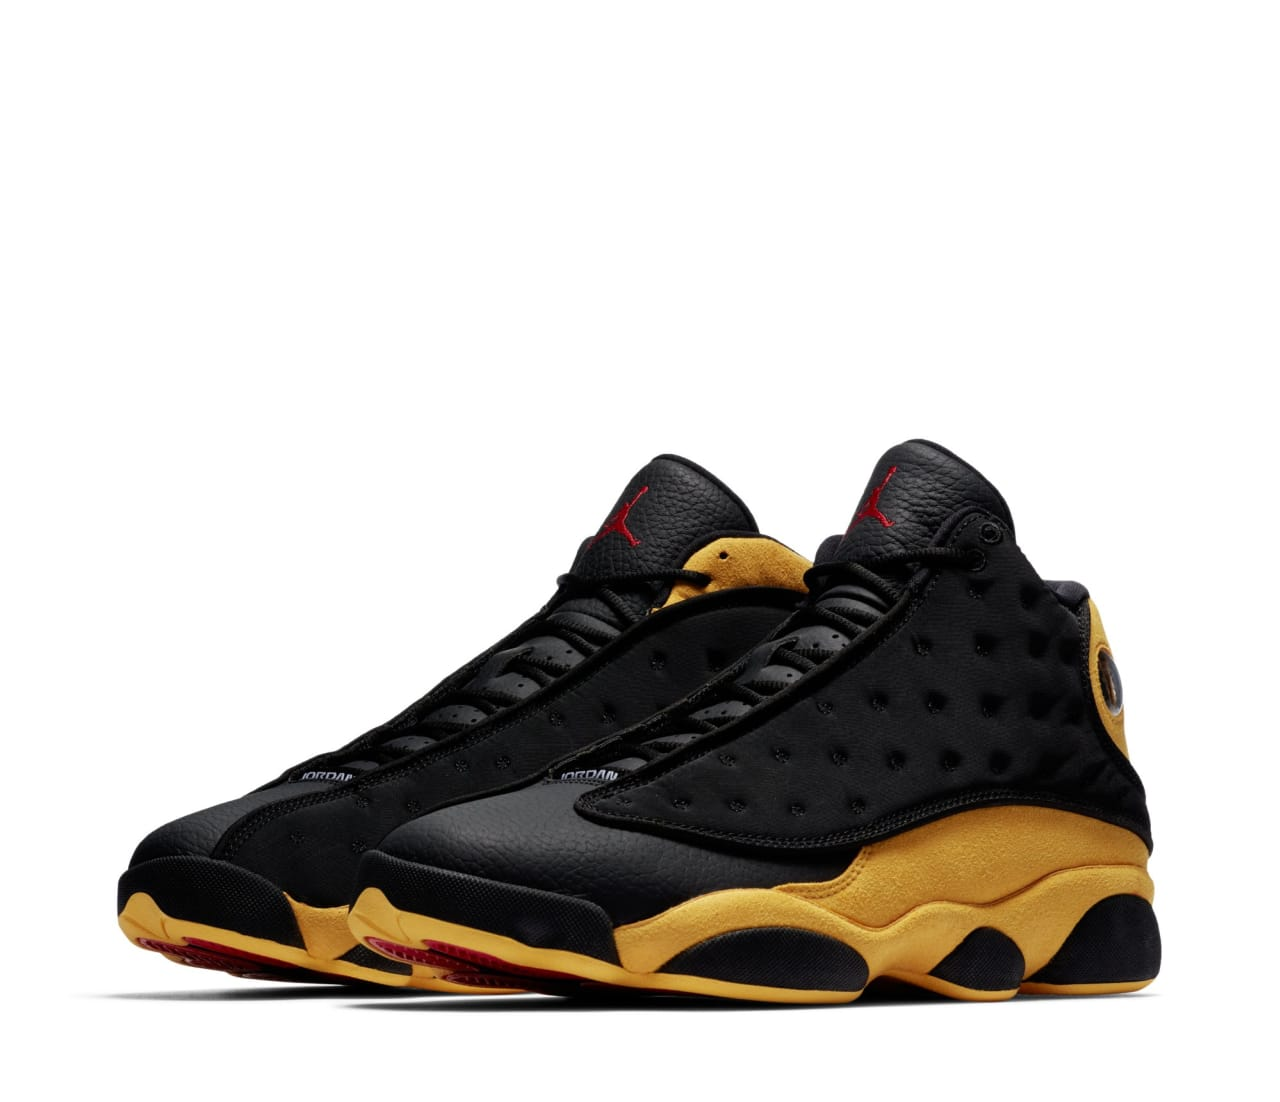 fd46f9fb6d2 Air Jordan 13 Carmelo Anthony 'Class of 2002' Release Canceled | Sole  Collector